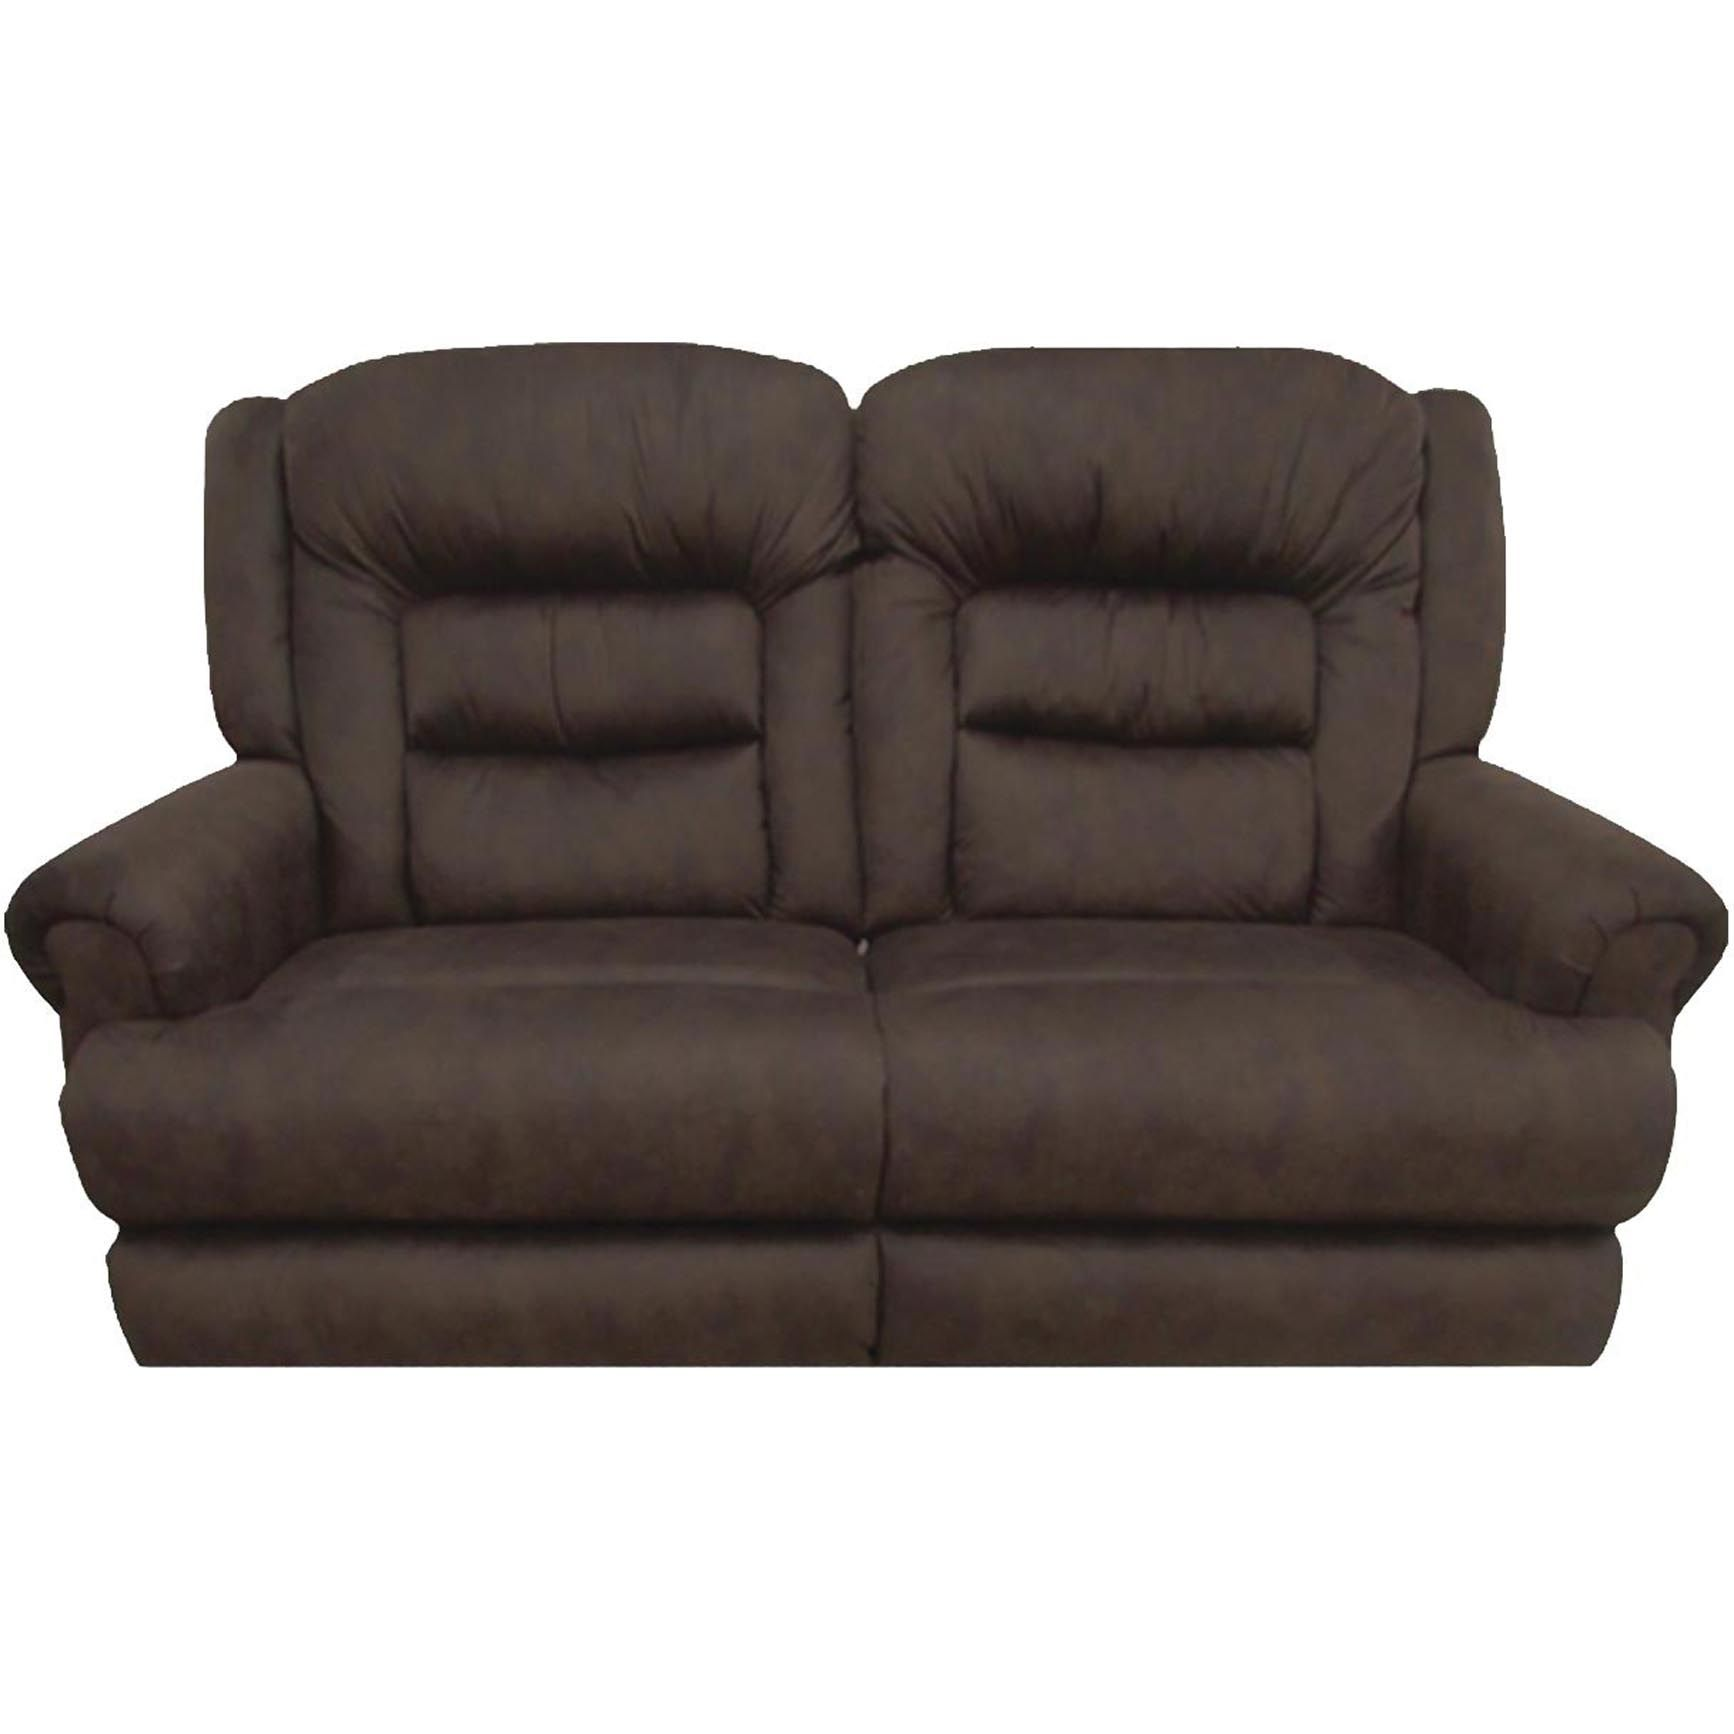 catnapper atlas reclining sofa with extra tall and power options rh pinterest co uk